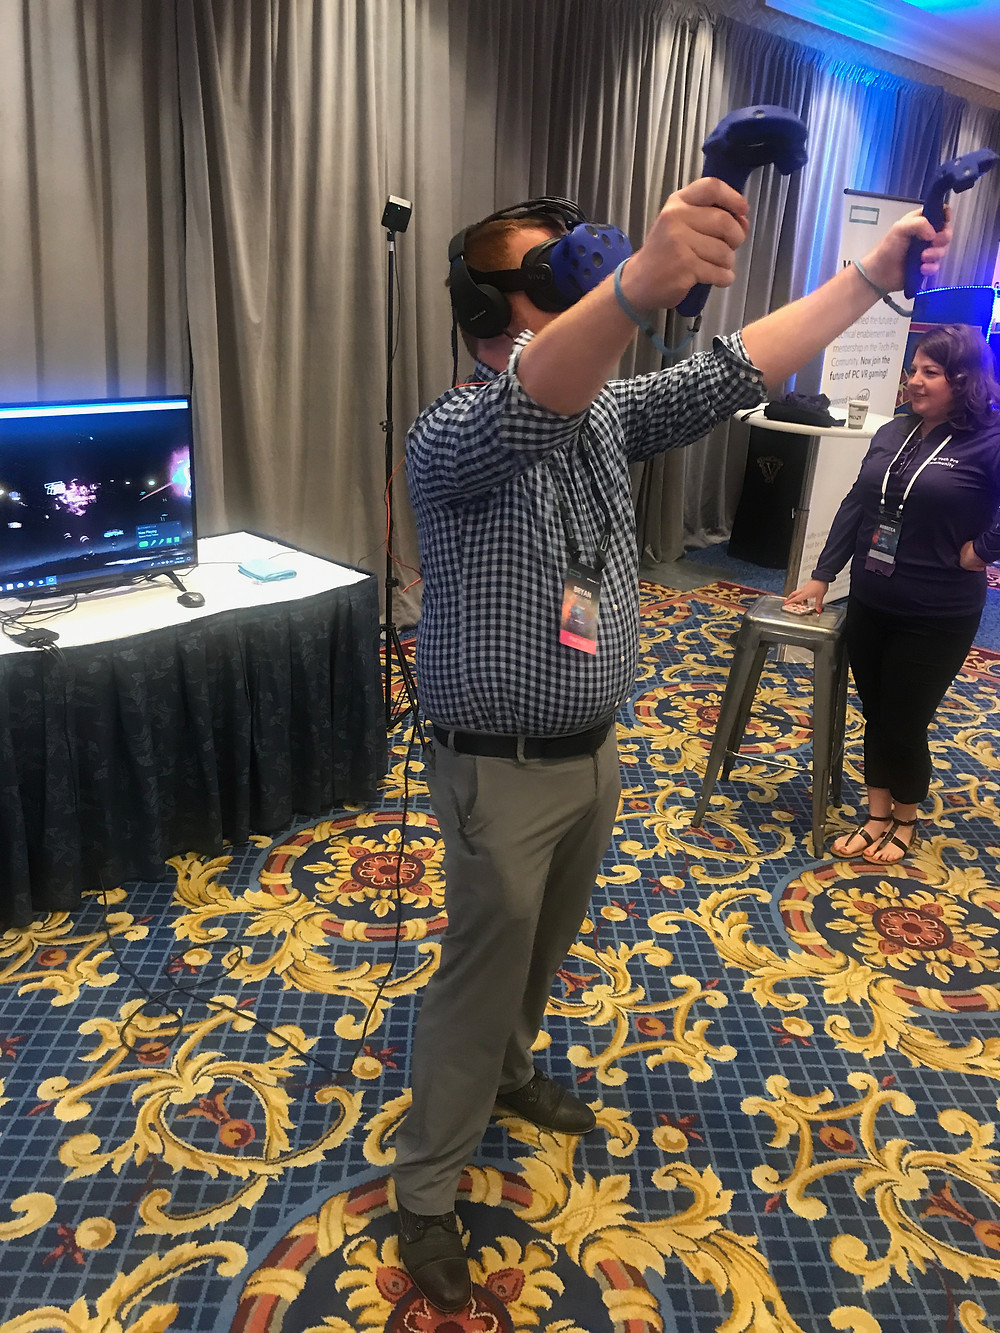 Virtual Reality Booth at a Corporate Conference Adds Some Fun to the Event